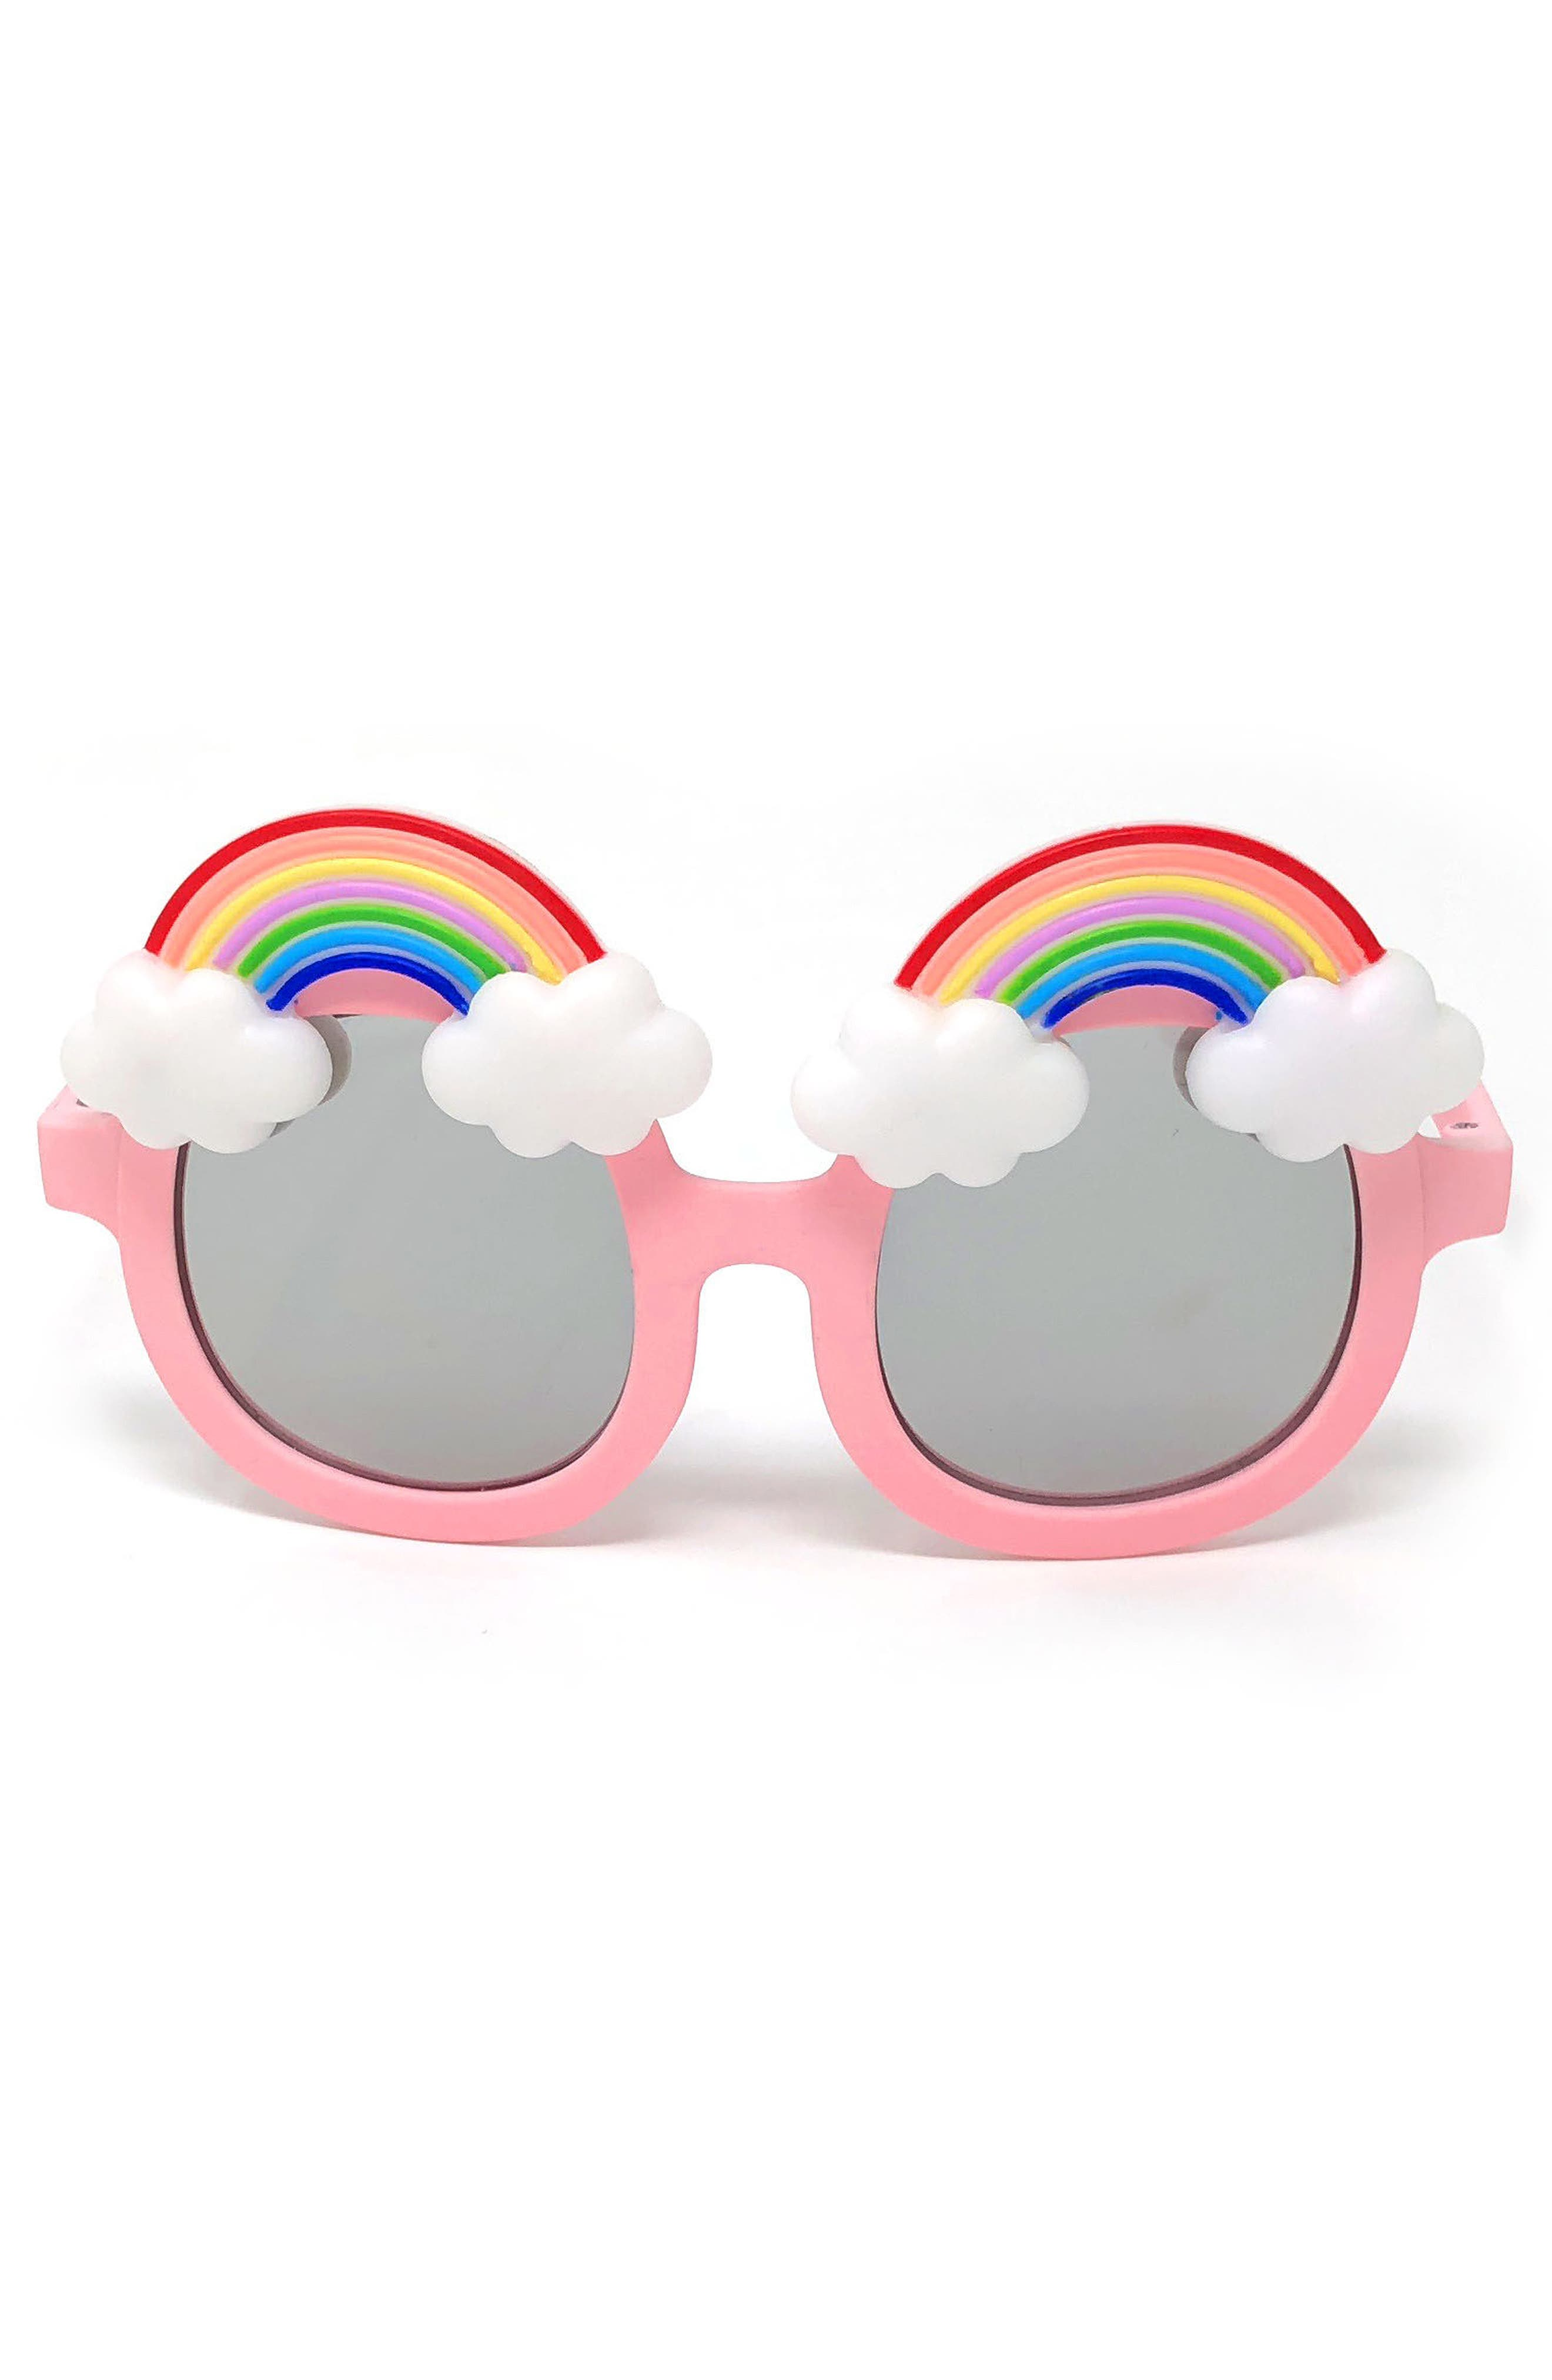 Large Round Rainbow Sunglasses,                             Main thumbnail 1, color,                             Pink/ Rainbow